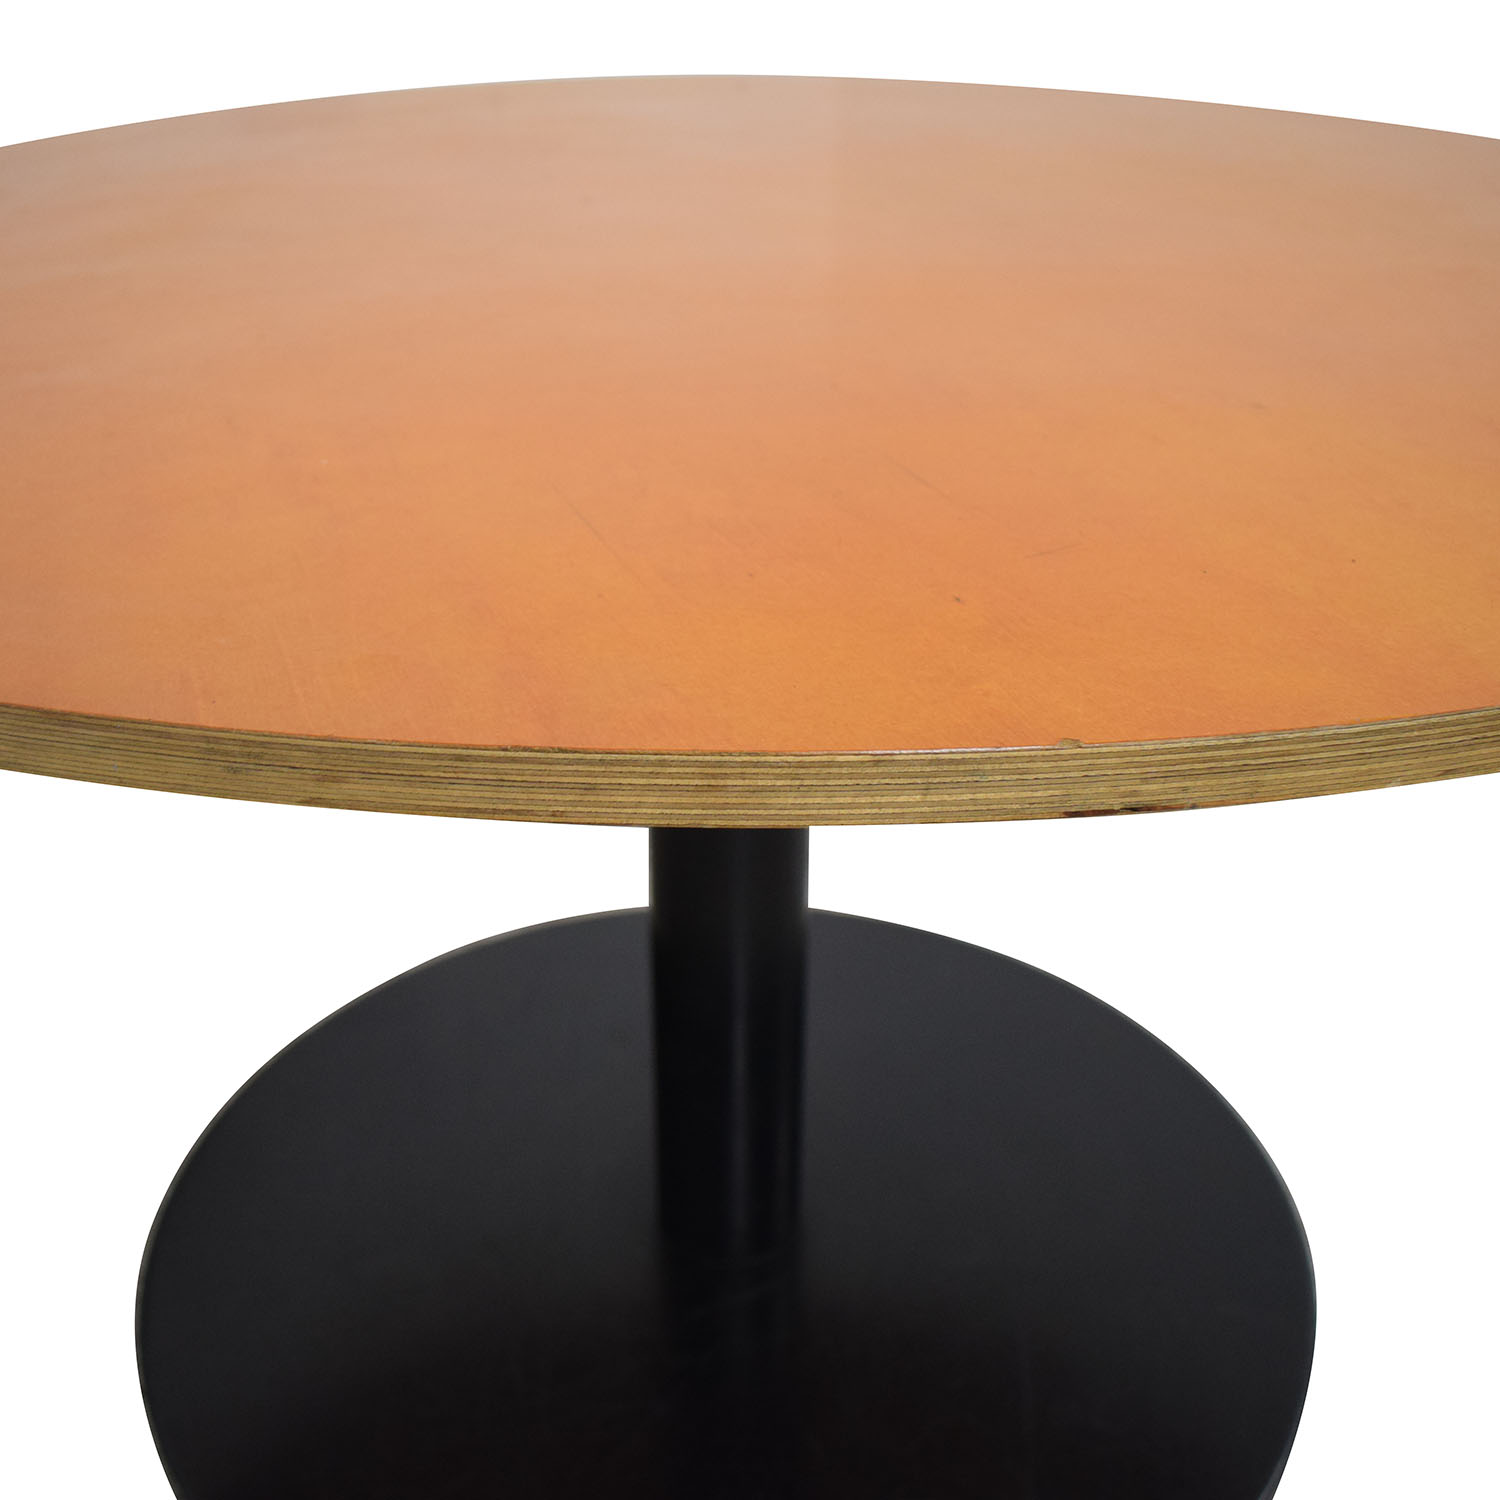 Minimalist Round Dining Table dimensions